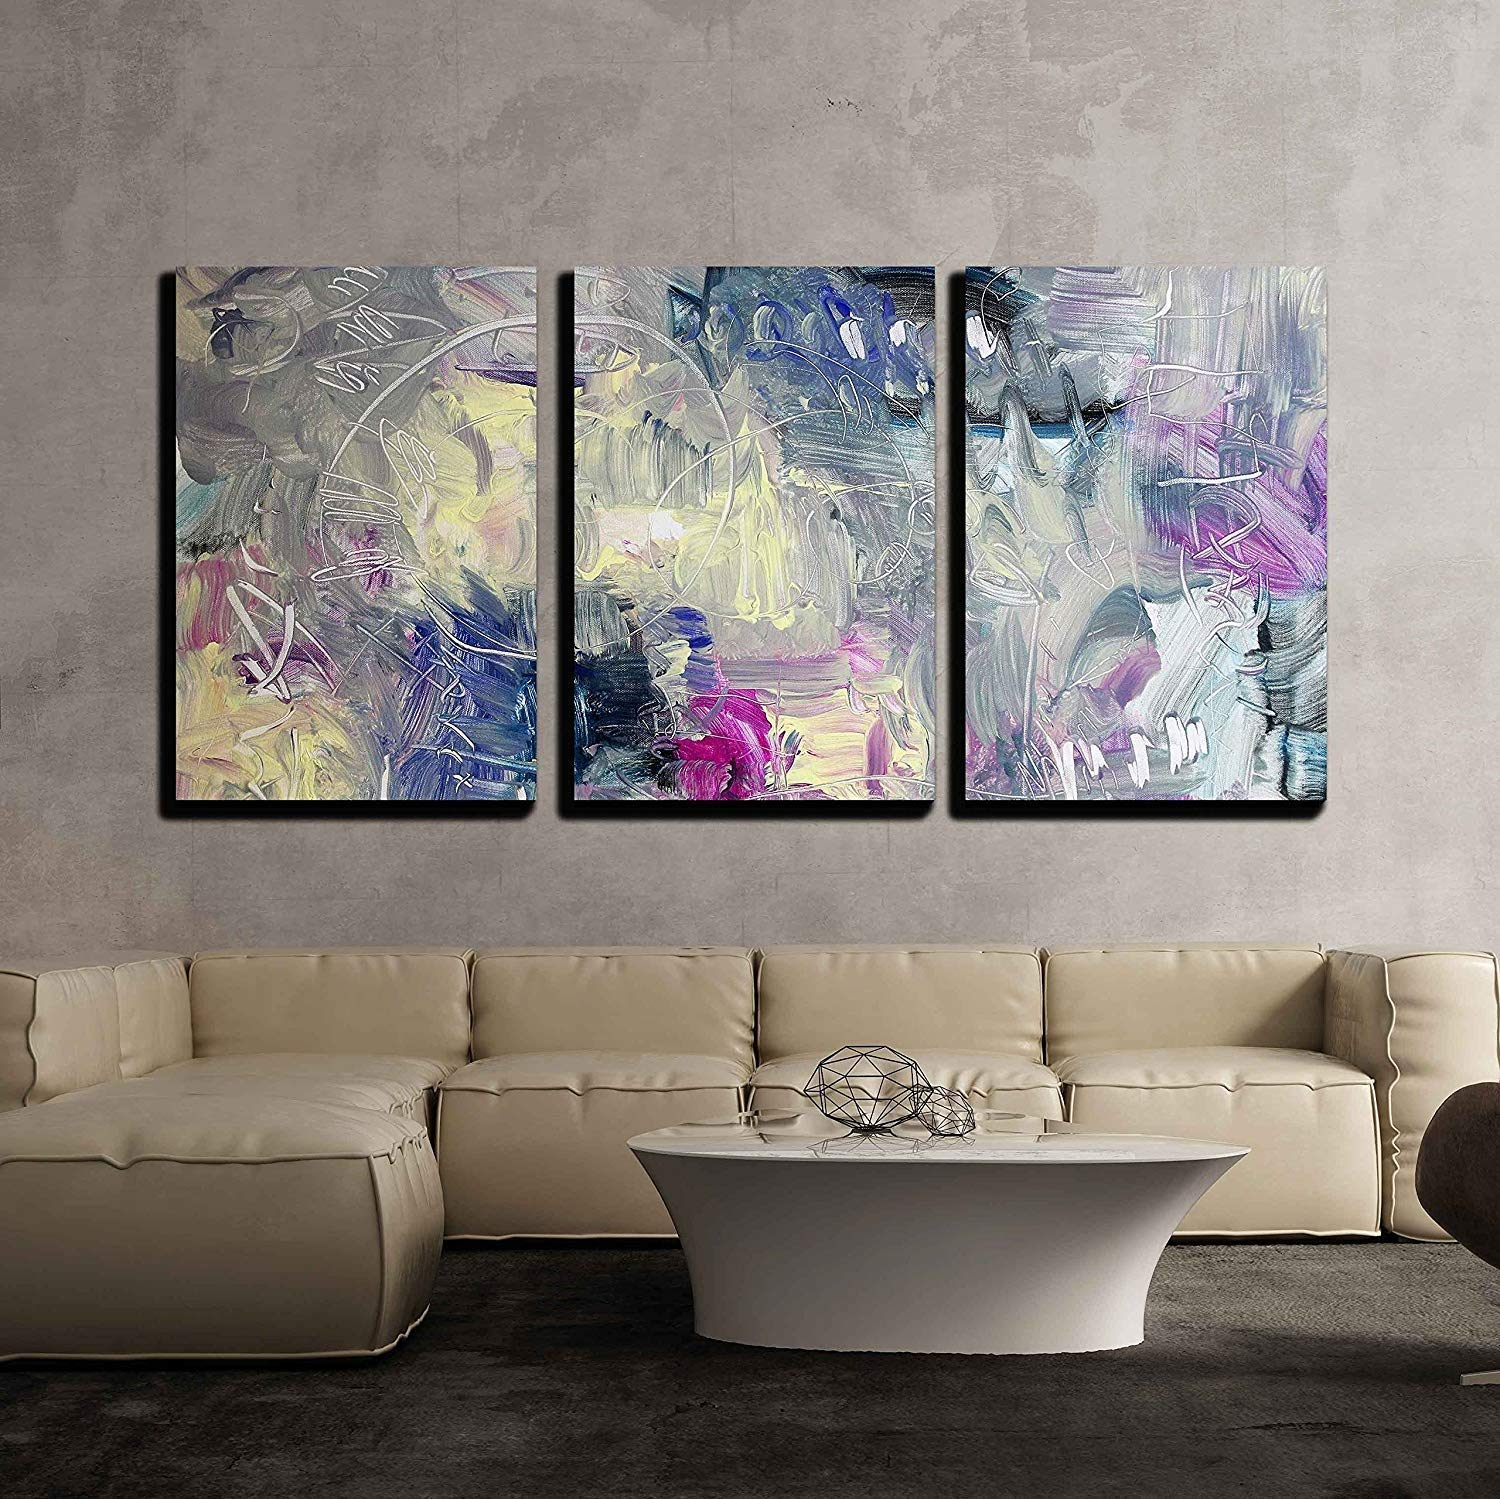 wall26 - 3 Piece Canvas Wall Art - Abstract Painting - Mixed Media Grunge - Modern Home Decor Stretched and Framed Ready to Hang - 24''x36''x3 Panels